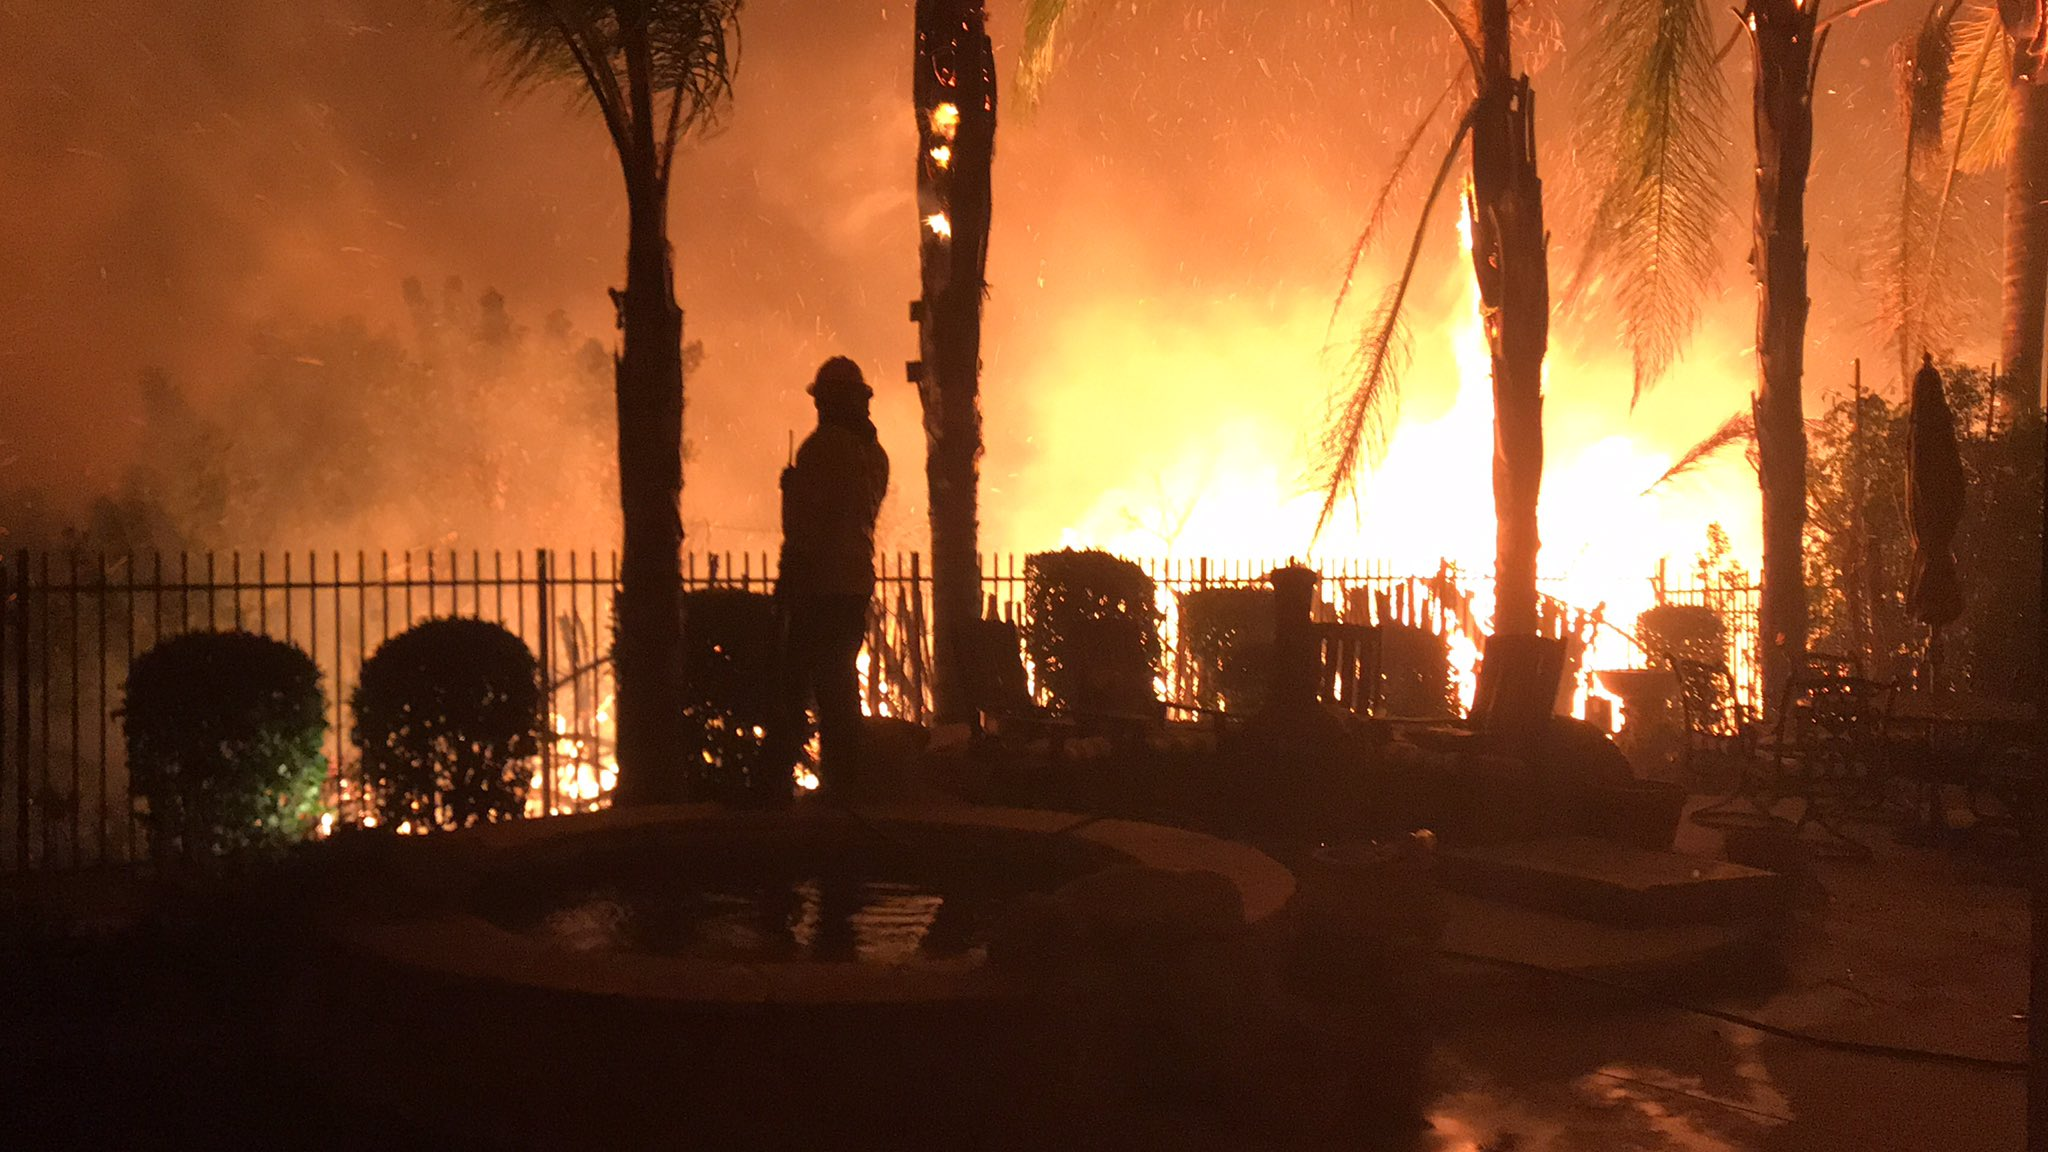 <div class='meta'><div class='origin-logo' data-origin='none'></div><span class='caption-text' data-credit=''>The Los Angeles County Fire Department shared this image of a firefighter battling the flames on Friday.</span></div>